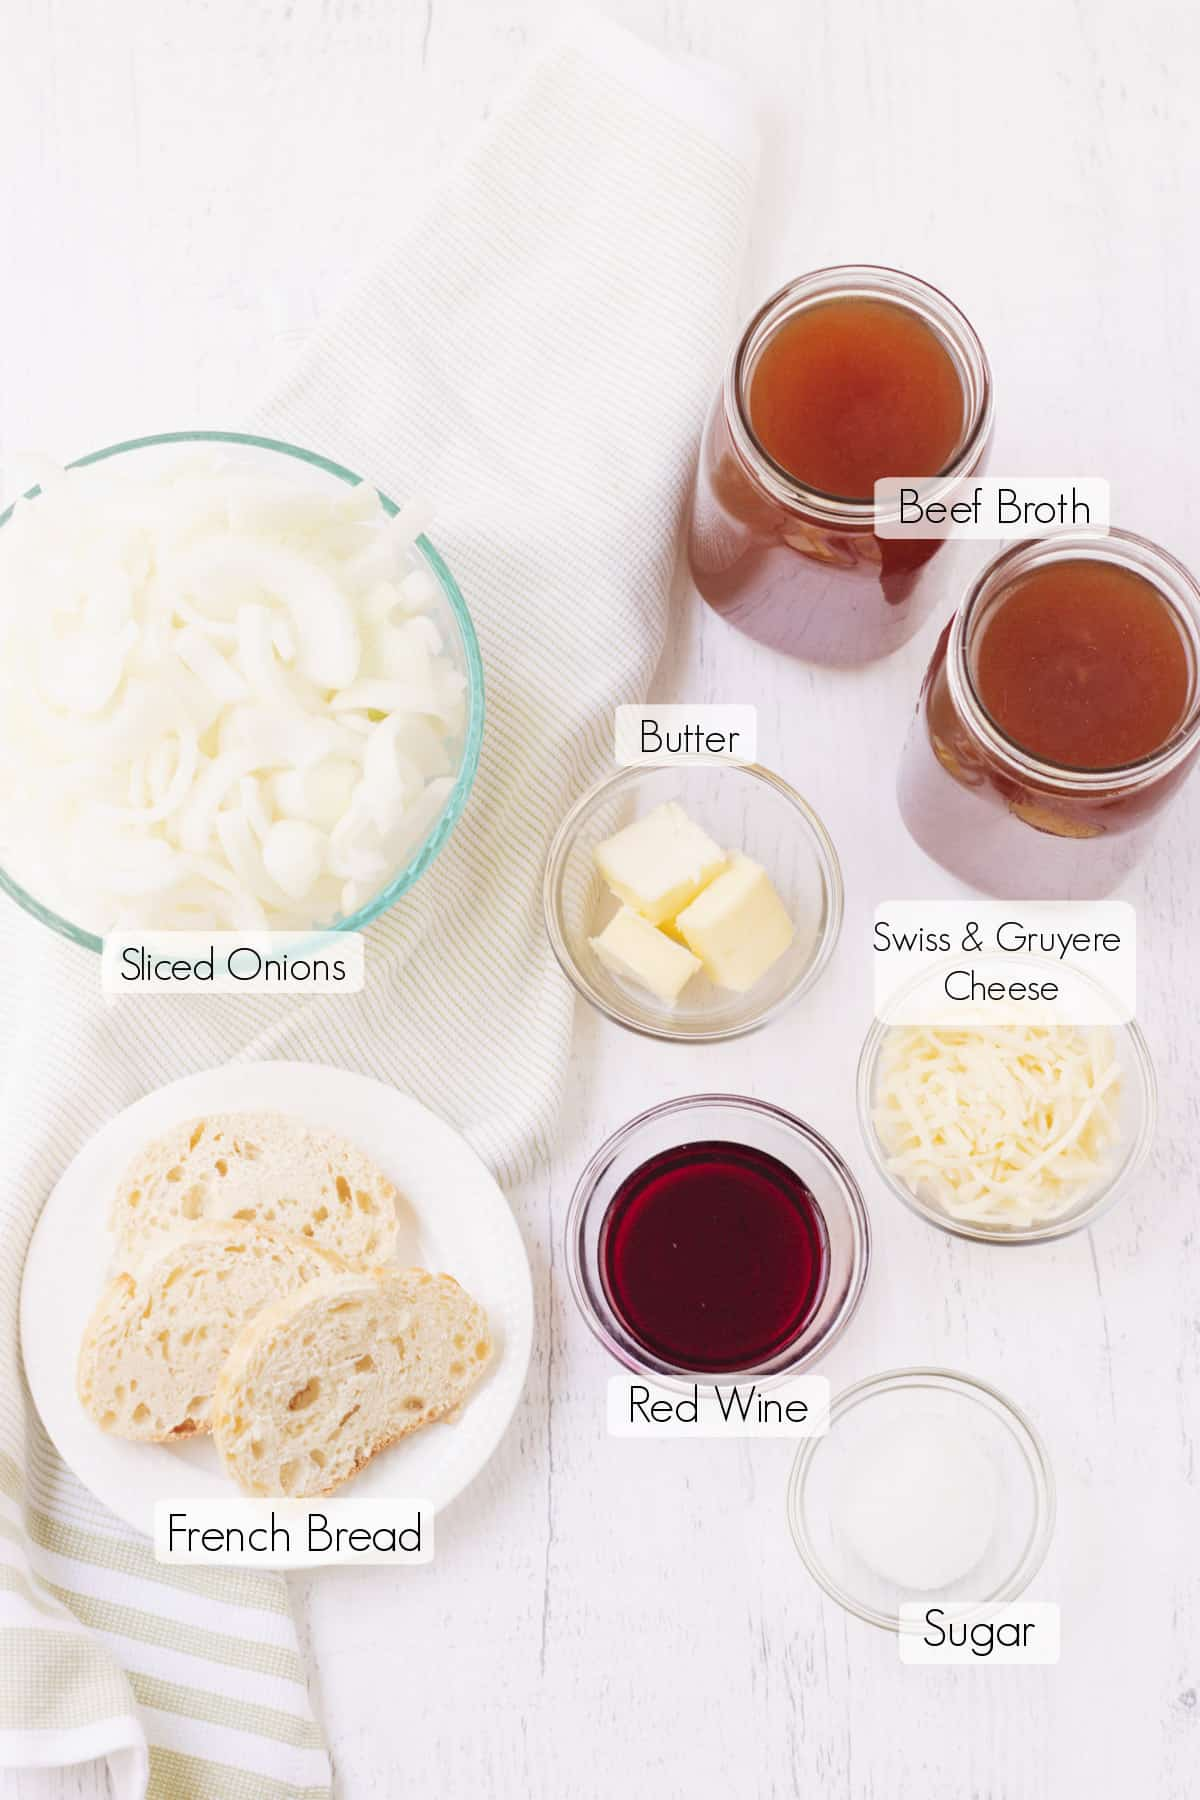 Labeled ingredients to make easy Crock Pot French onion soup.